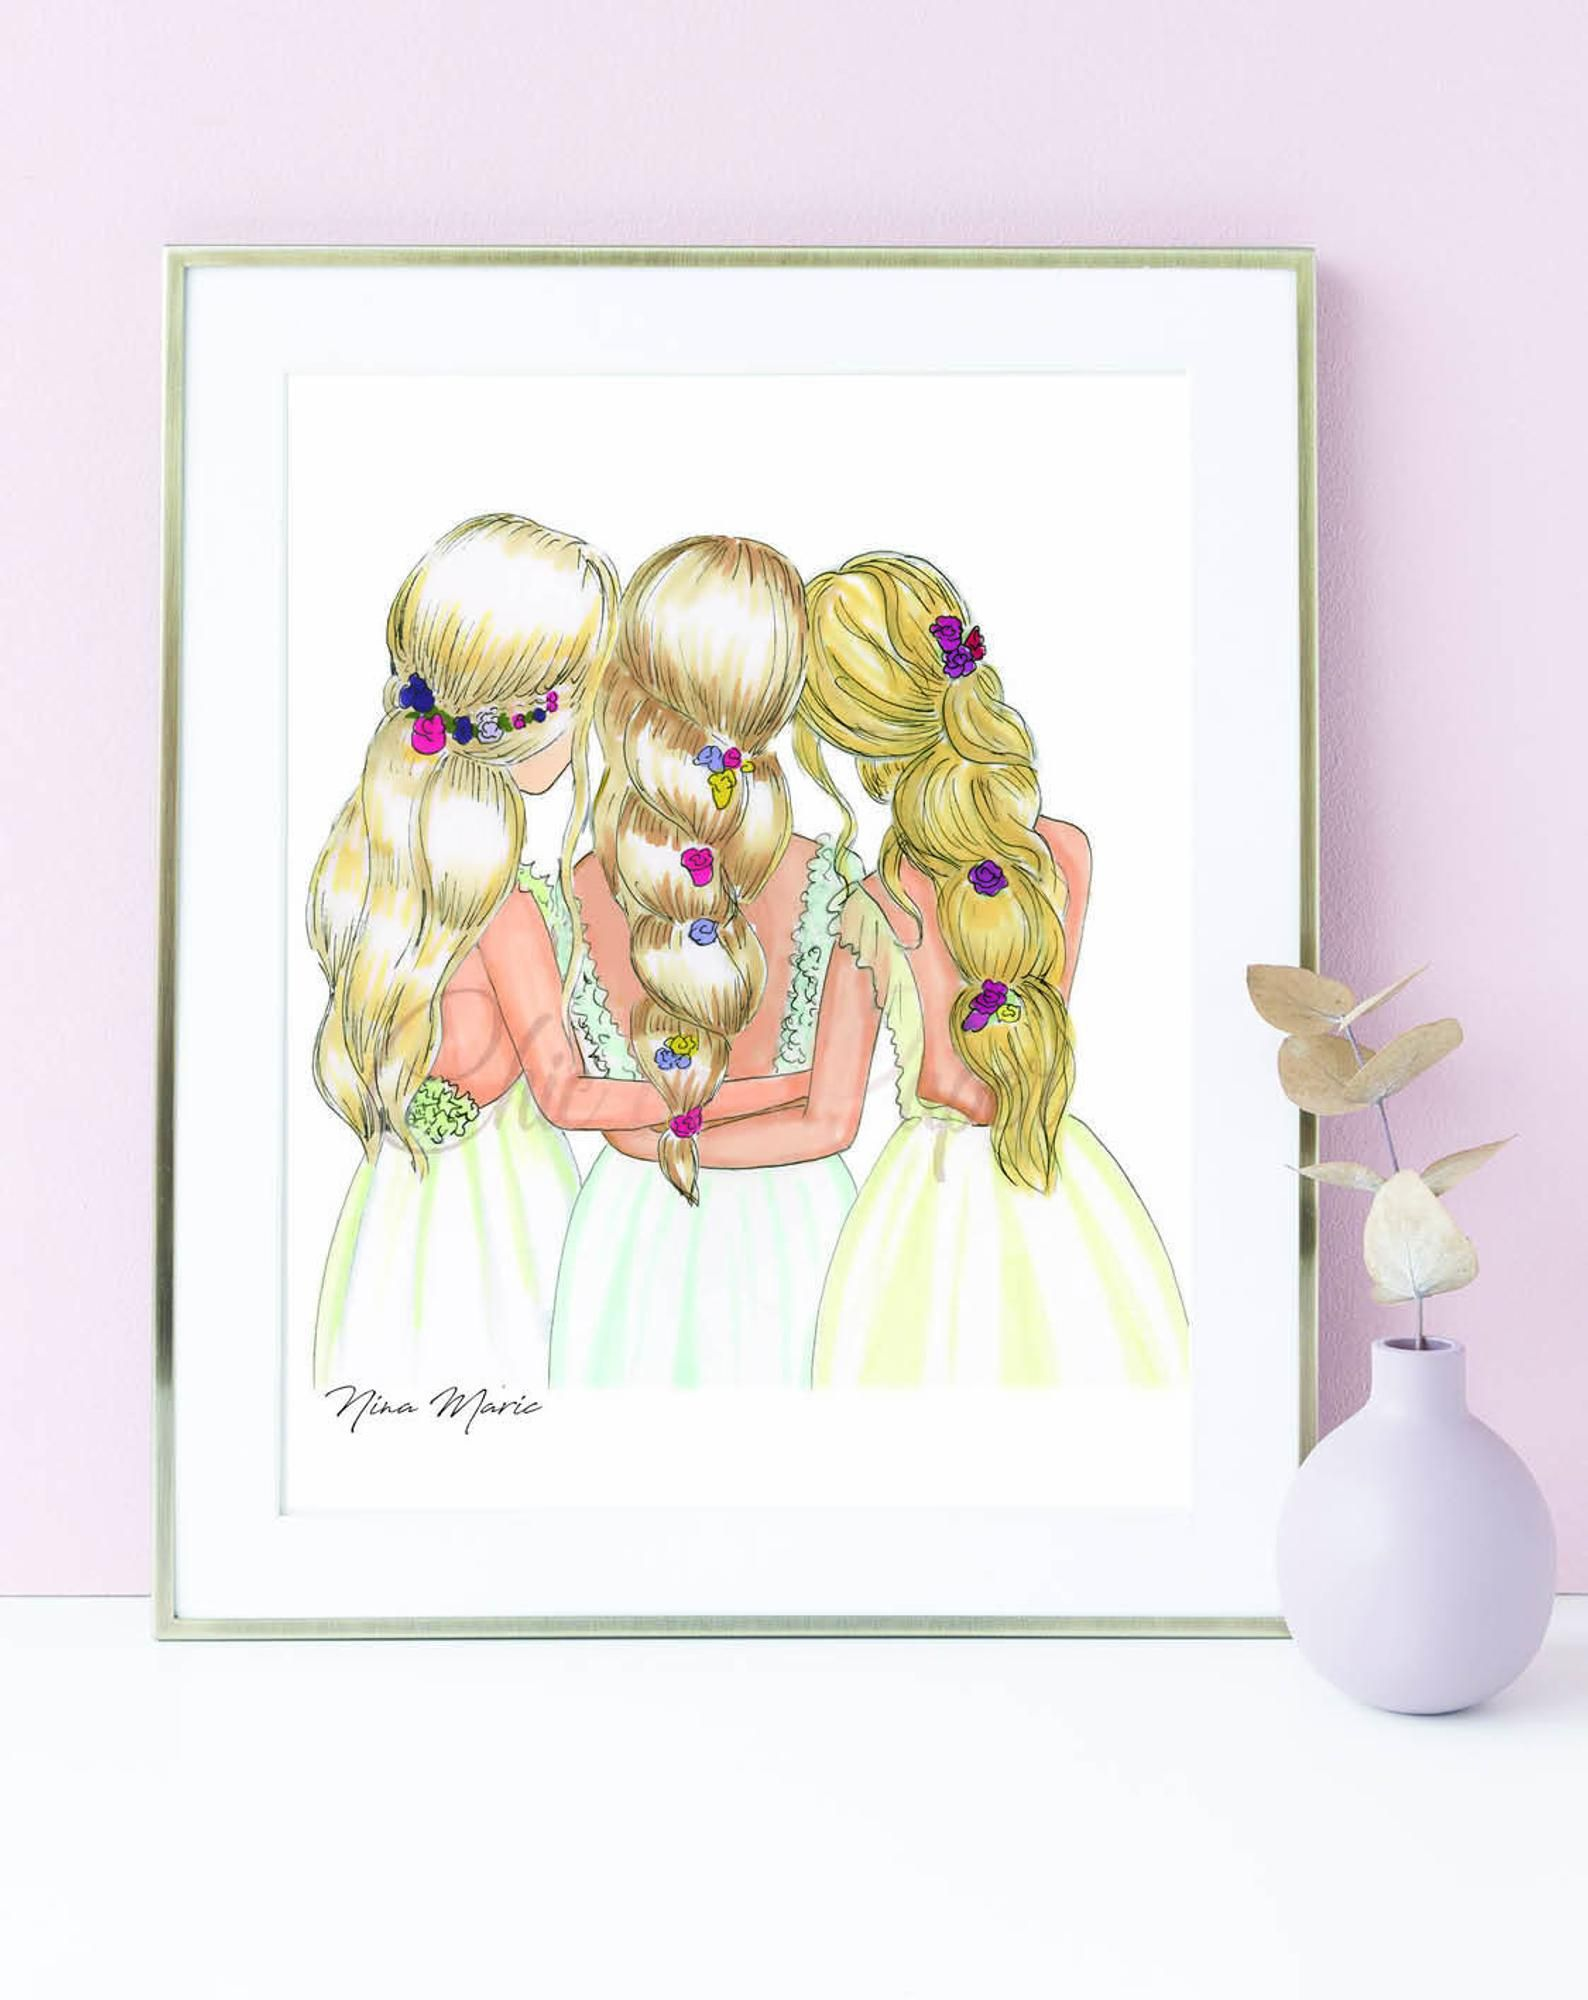 3 Best Friends Drawing : friends, drawing, Three, Friends, Fashion, Illustration, Print, Blonde, Print,, Fashion,, Drawings